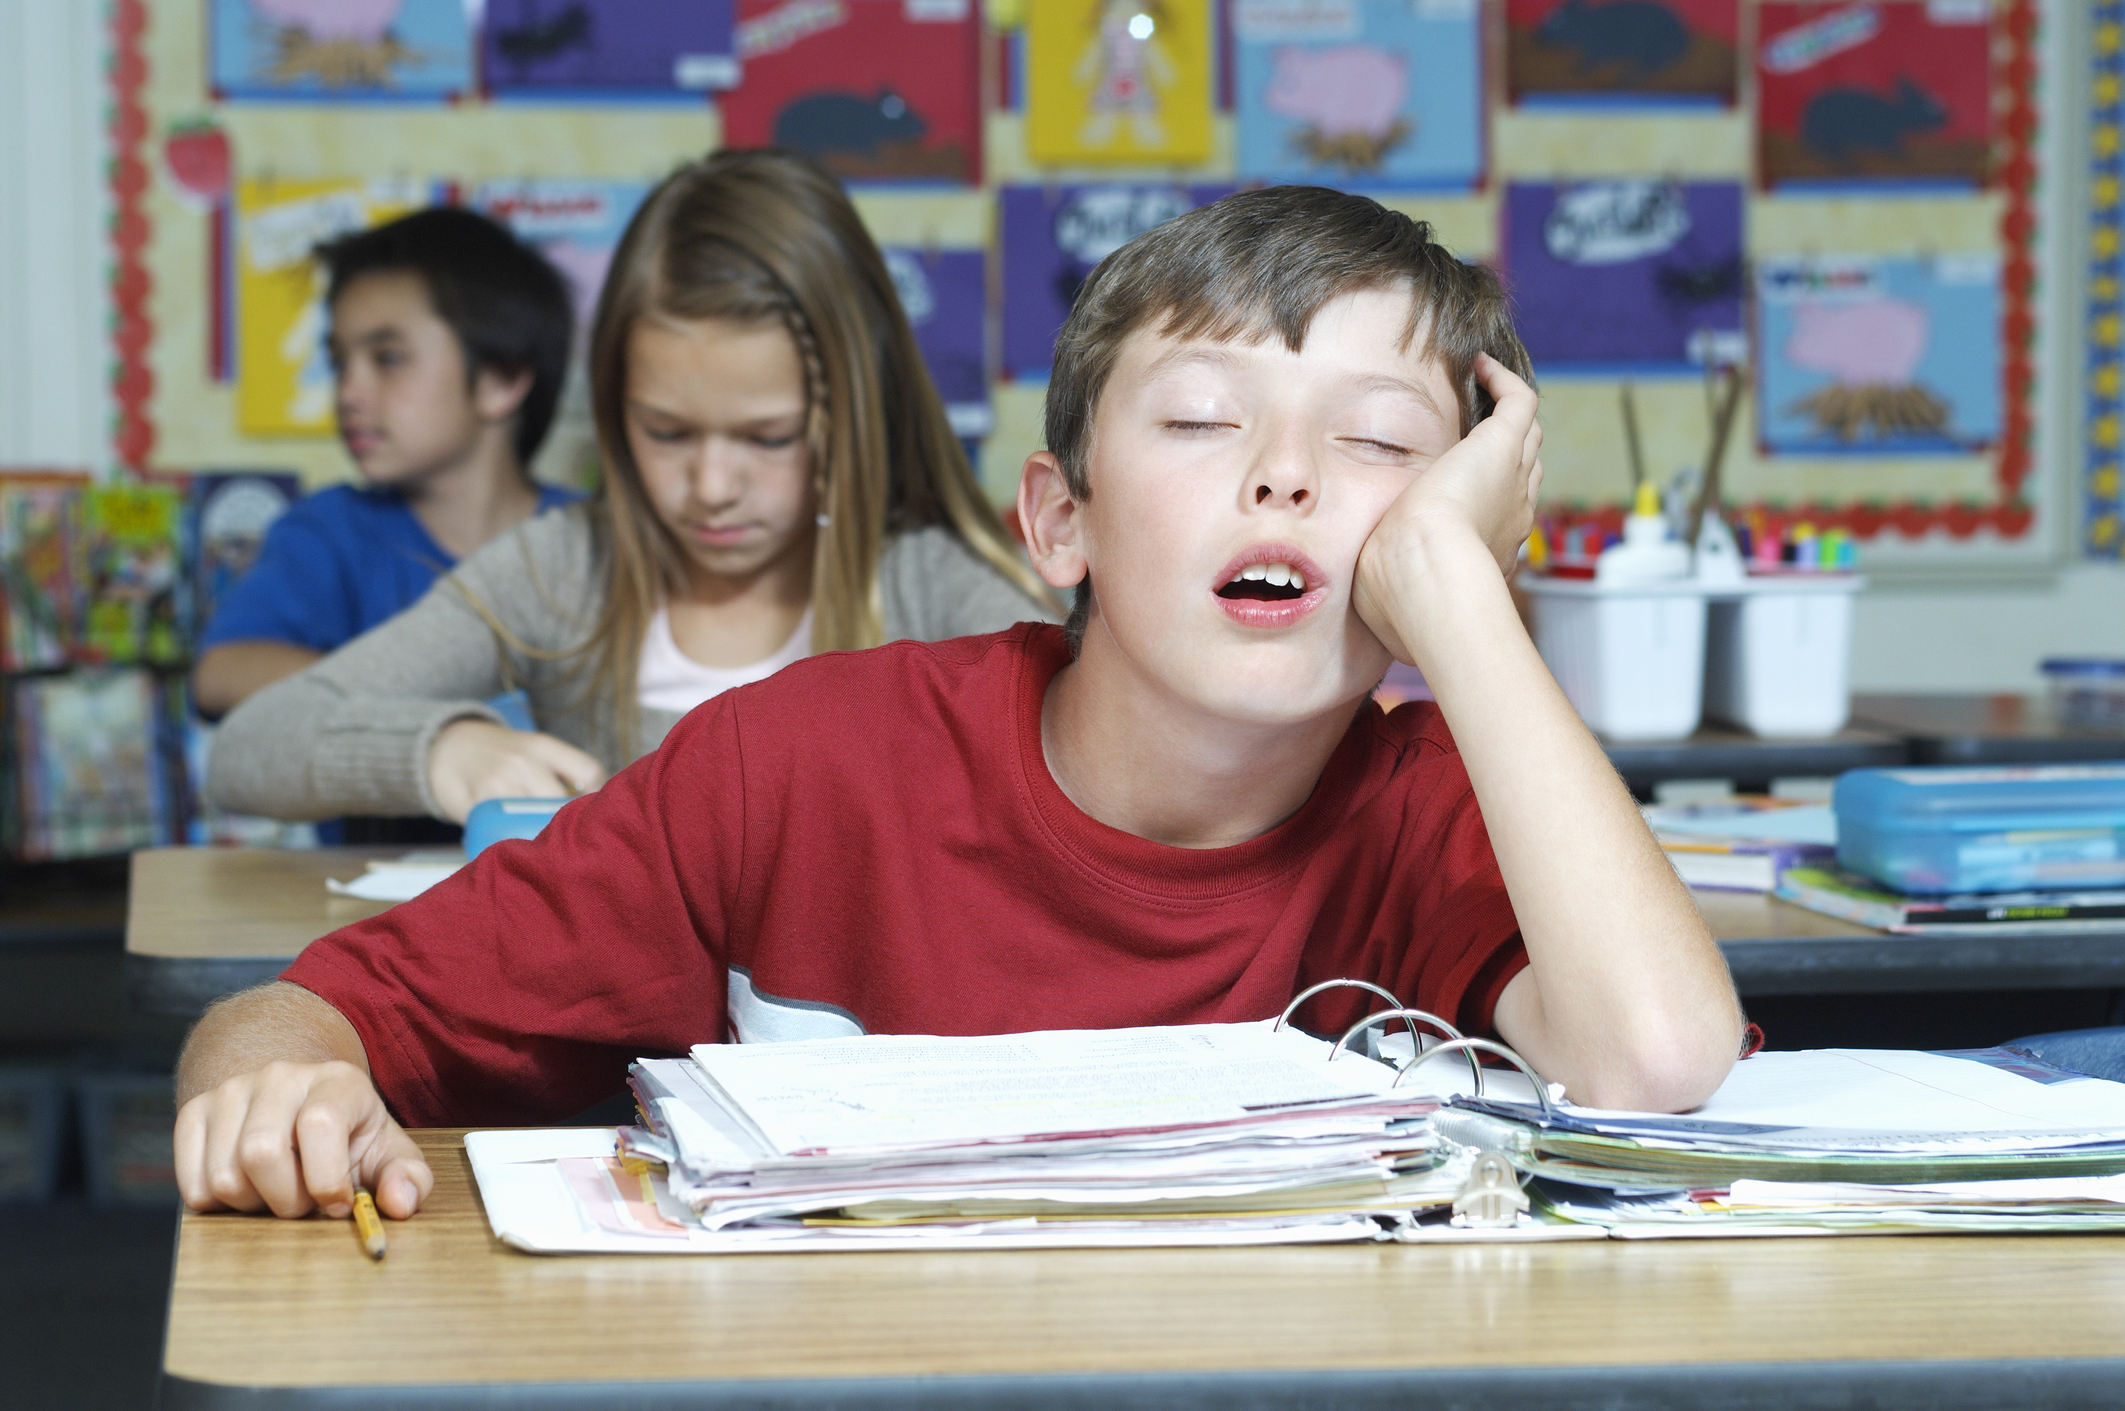 A young boy propped up on his elbow falls asleep at his school desk (Thinkstock/PA)